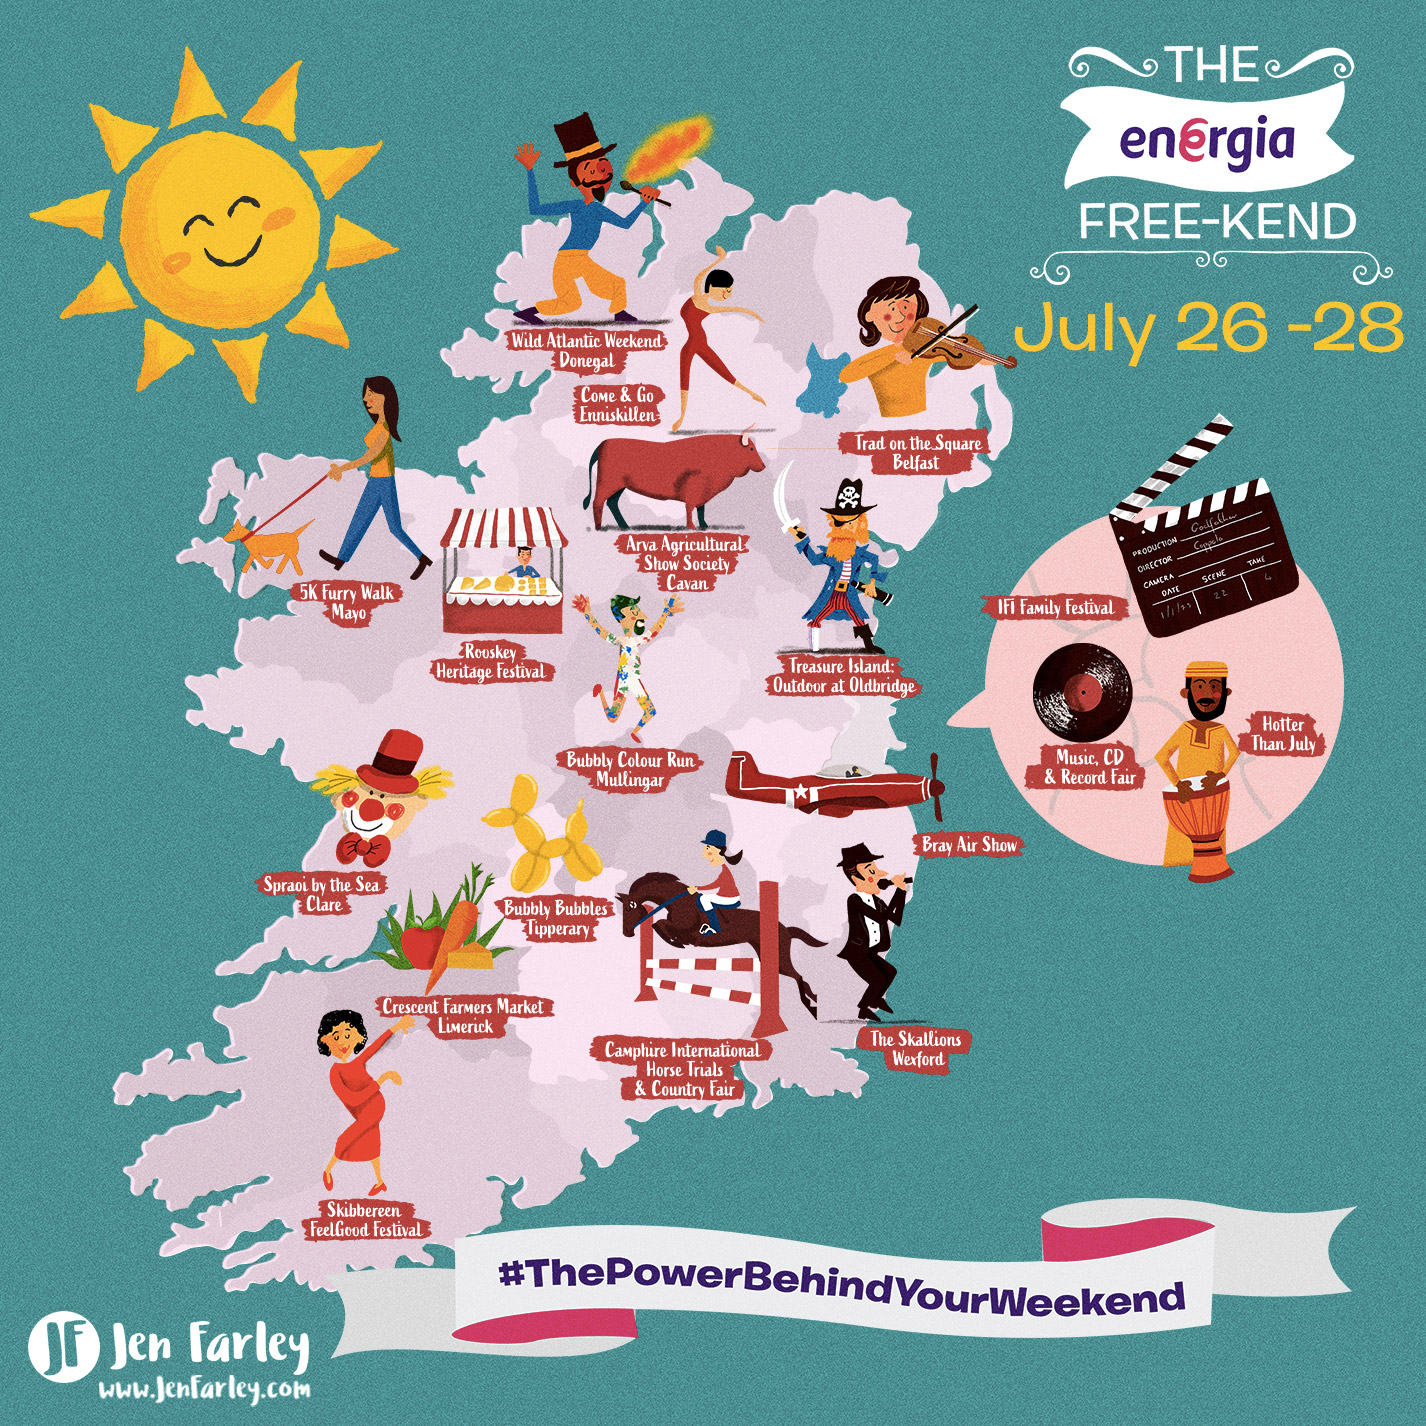 Illustrated Map Of Ireland 26 - 28 July 2019 | Jennifer ... on map of netherlands, map of european countries, map of japan, map of britain, map of british isles, map of dublin, map of skellig islands, map of denmark, map of united kingdom, map of ring of kerry, map of united states, map of prince edward island, map of eastern hemisphere, map of yugoslavia, map of northeast us, map of sweden, map of scotland, map of london, map of hong kong, map of philippines,